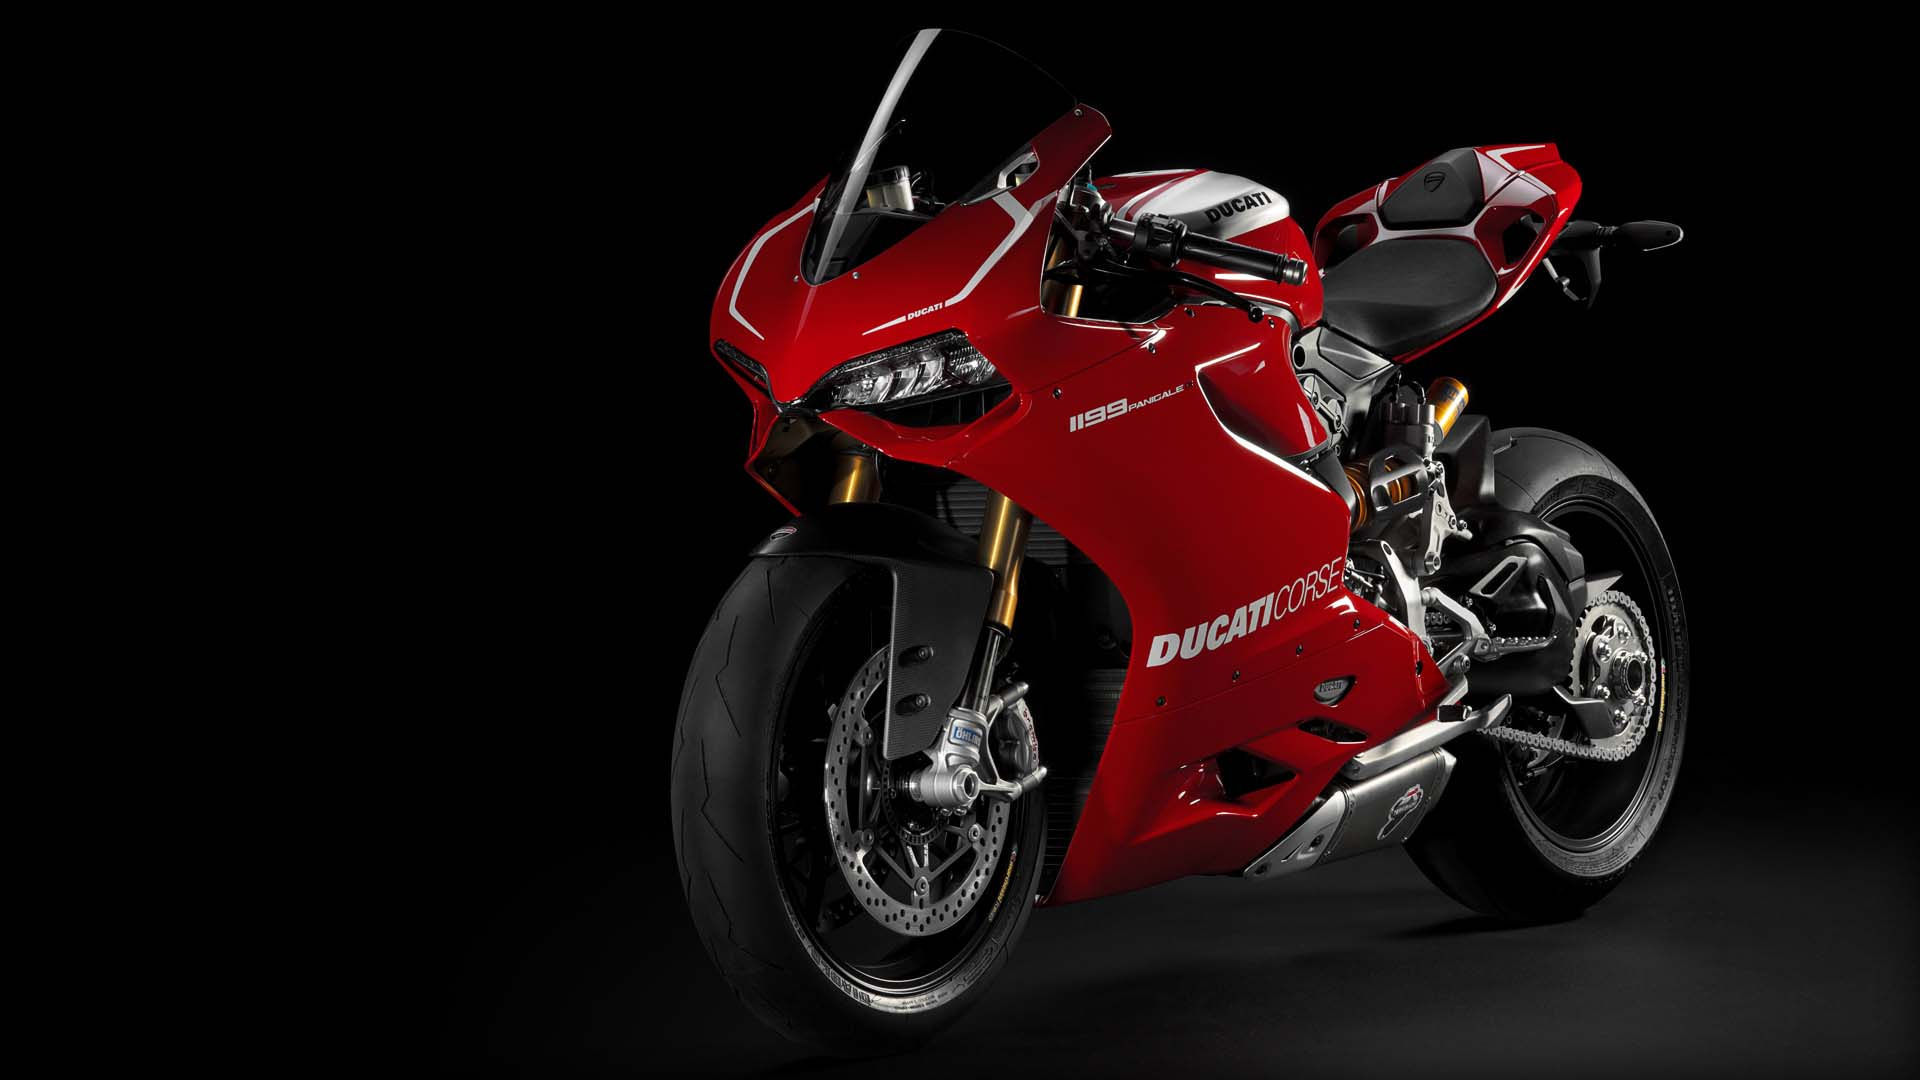 2014 Ducati  | Ducati 1199 Panigale R - Front Side Angle